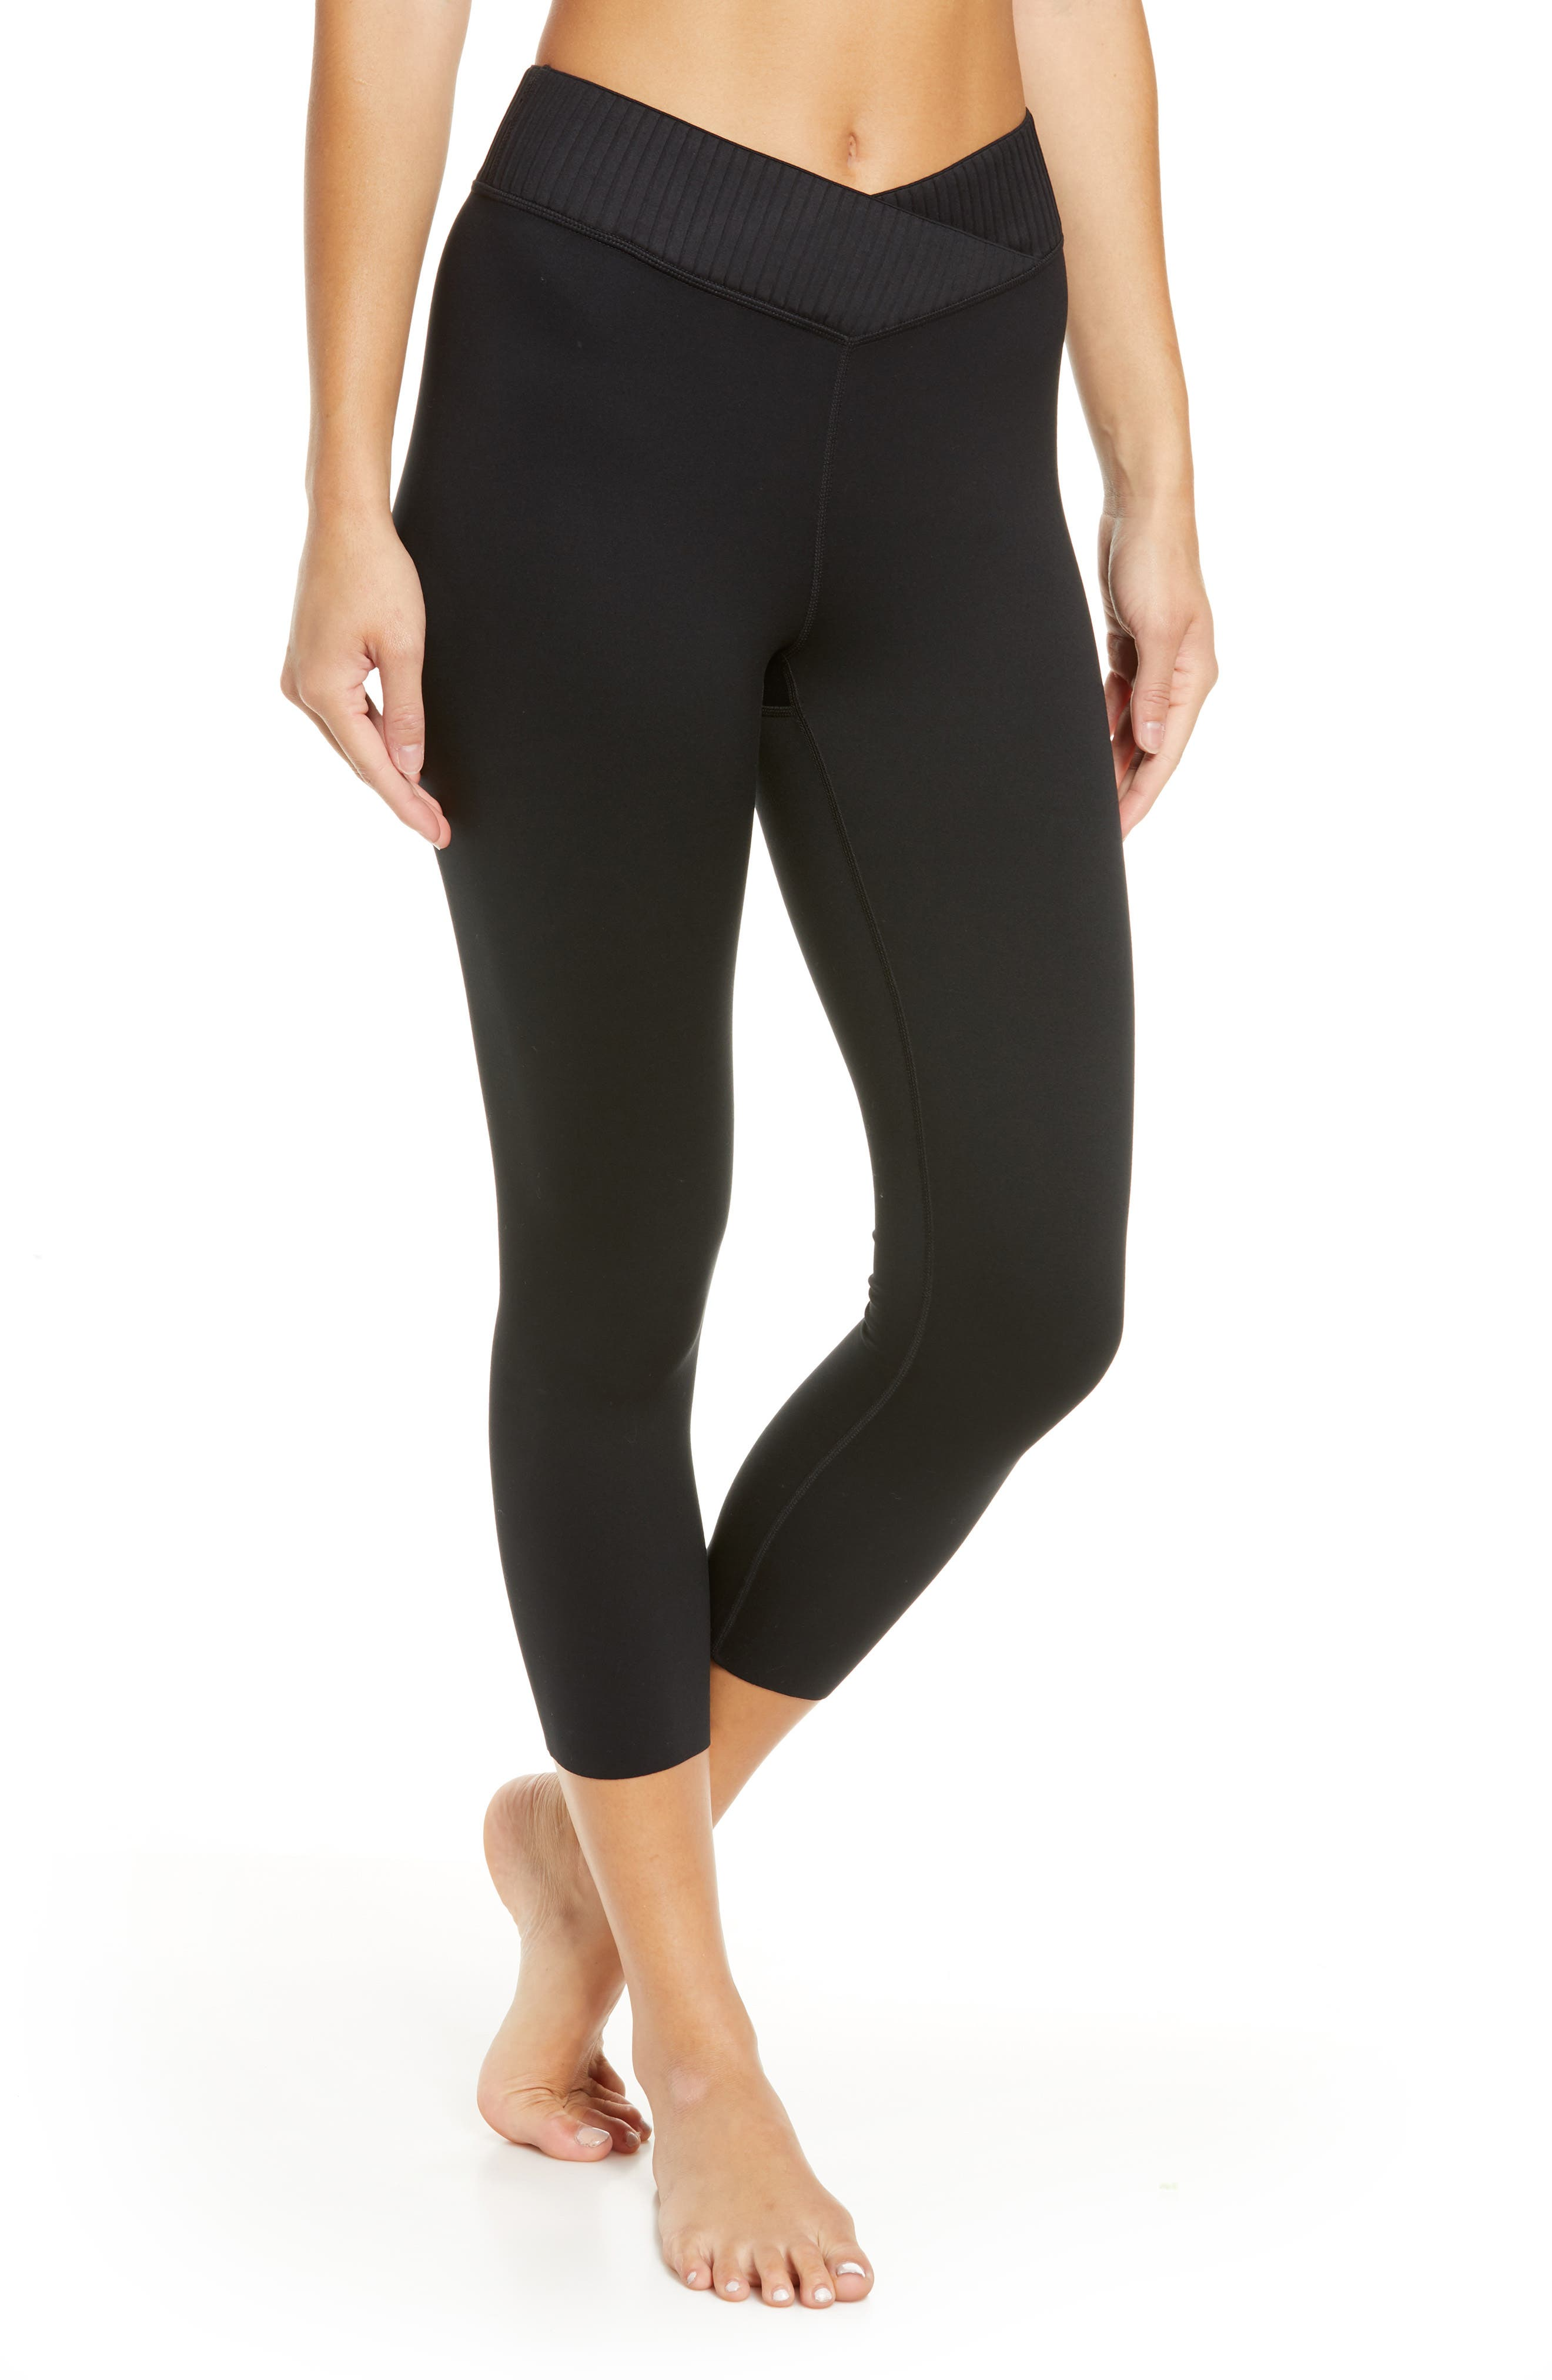 A ribbed waistband dips into a crossover front for motion-free comfort in these sleek leggings with seamless crop hems and sustainable stretch fabric. Style Name: Zella Wrap High Waist Crop Leggings. Style Number: 6021483. Available in stores.